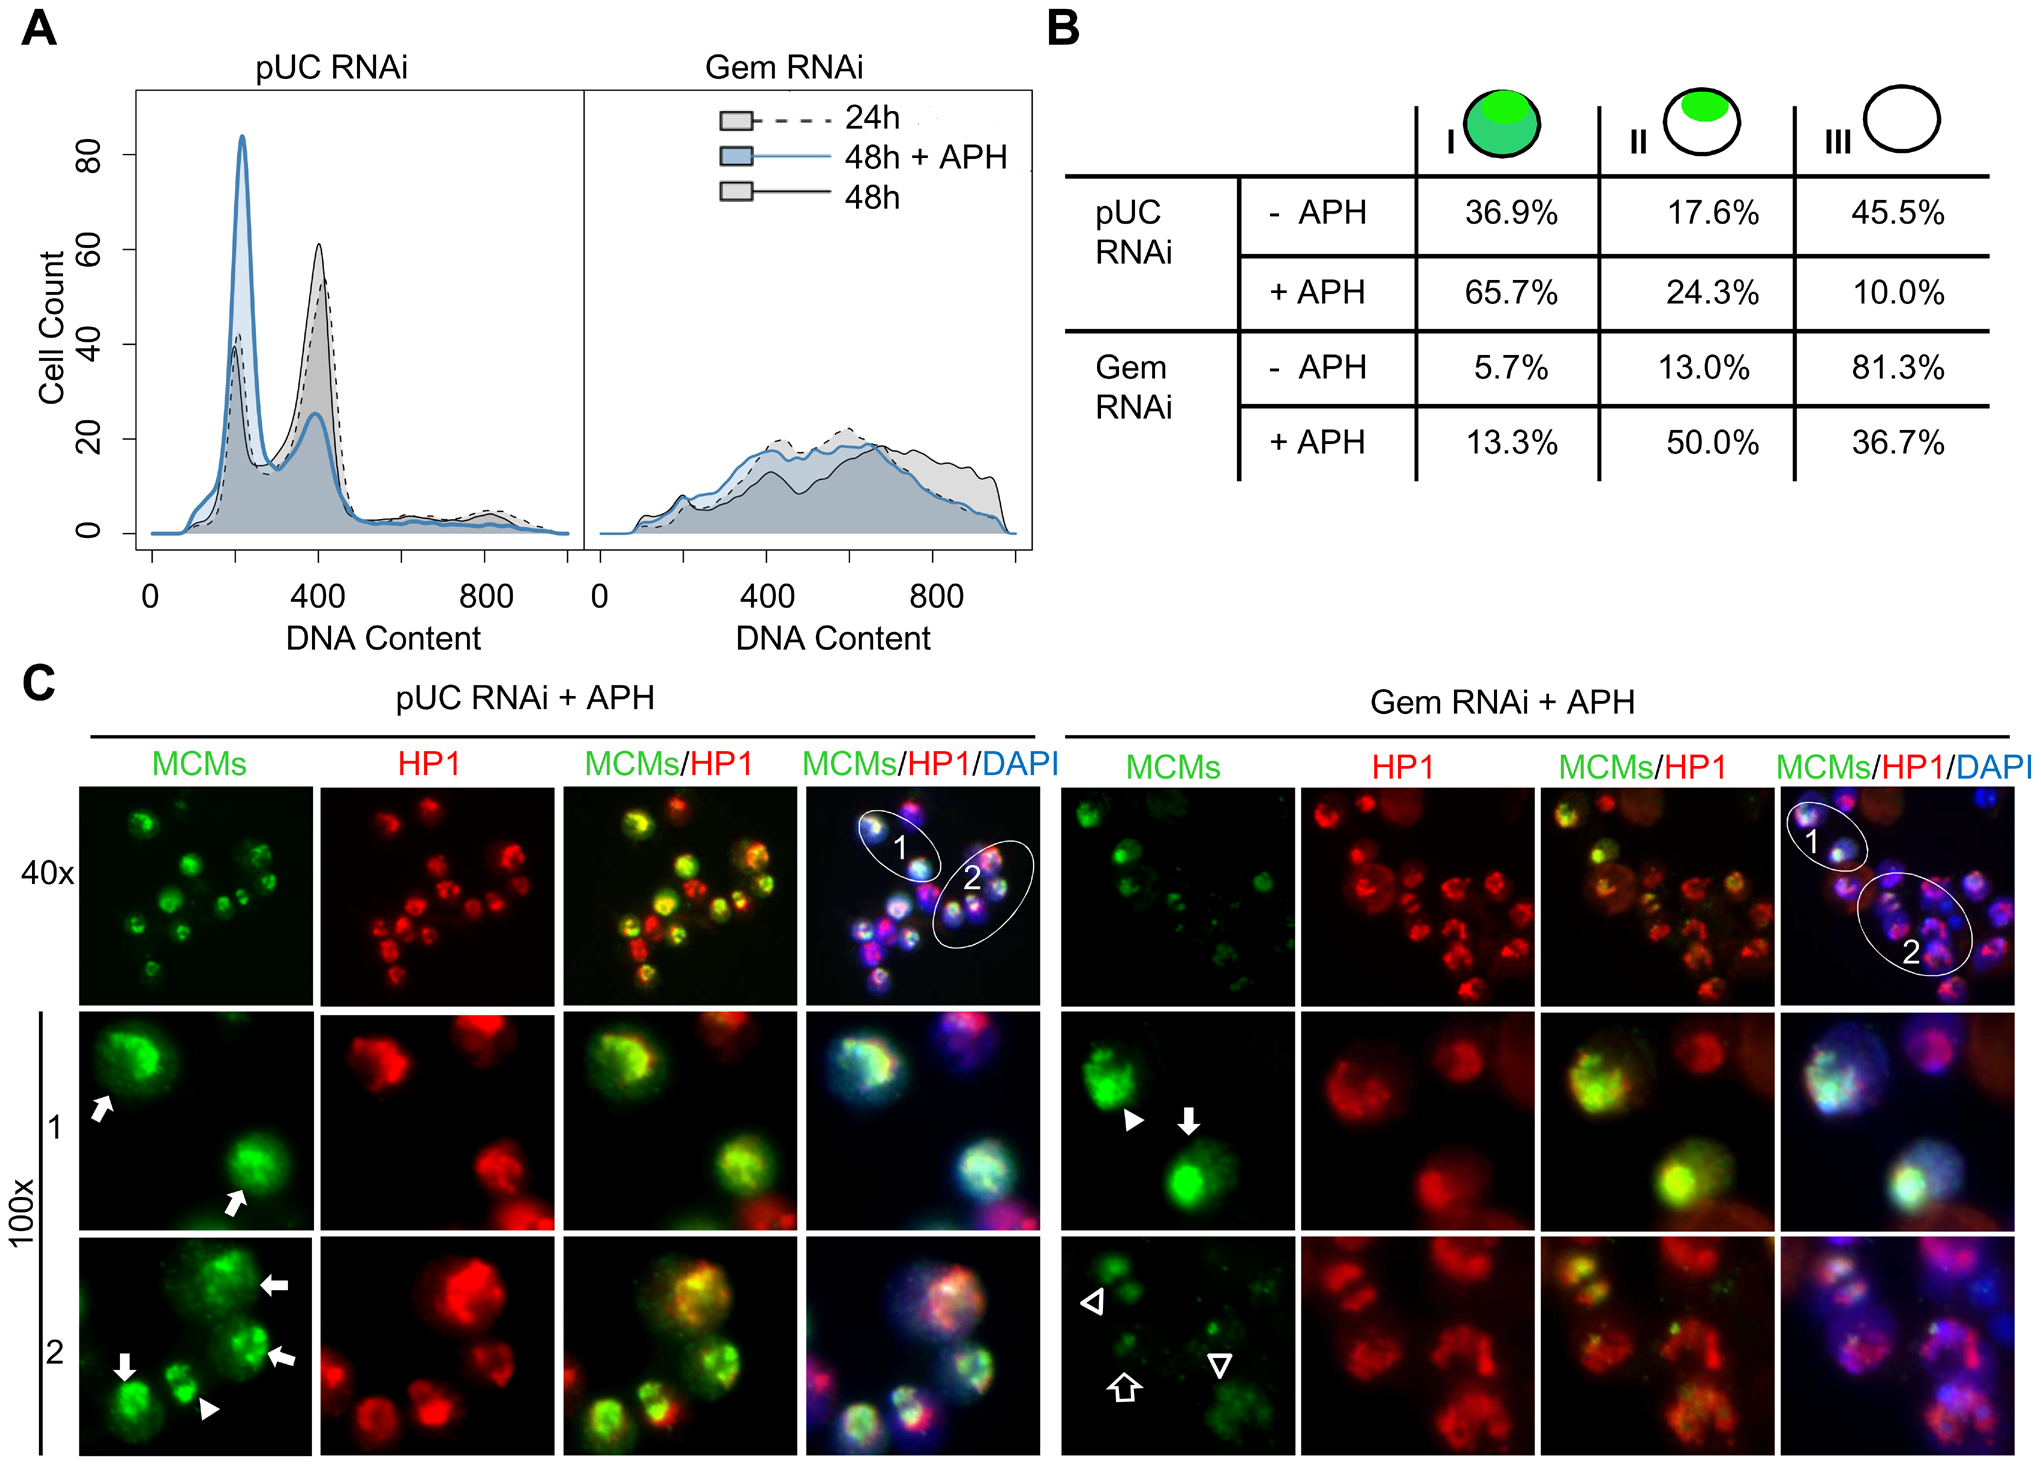 MCMs are preferentially loaded onto heterochromatin in the absence of geminin.